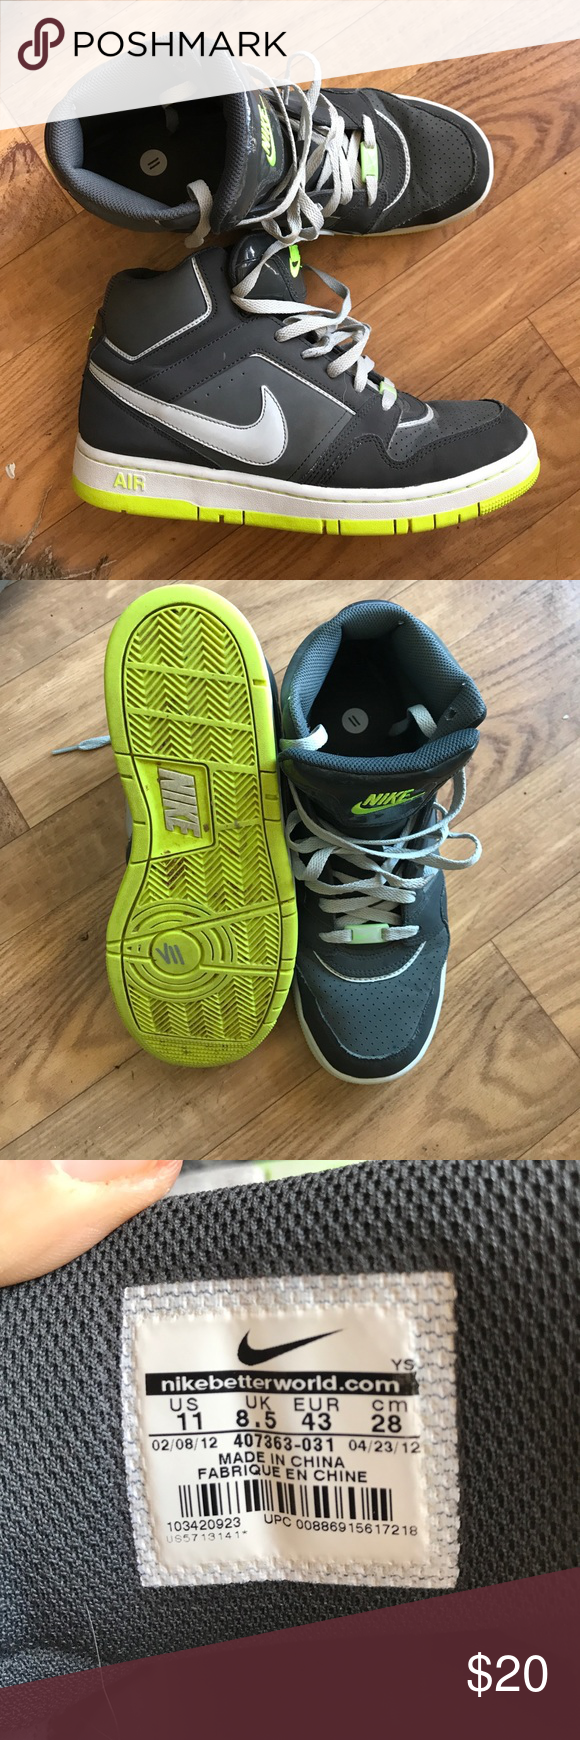 Men's Nike Air sz 11 Used but still look very nice. No stains rips or holes. Bottoms show little wear. Comes from a smoke free home Nike Shoes Athletic Shoes